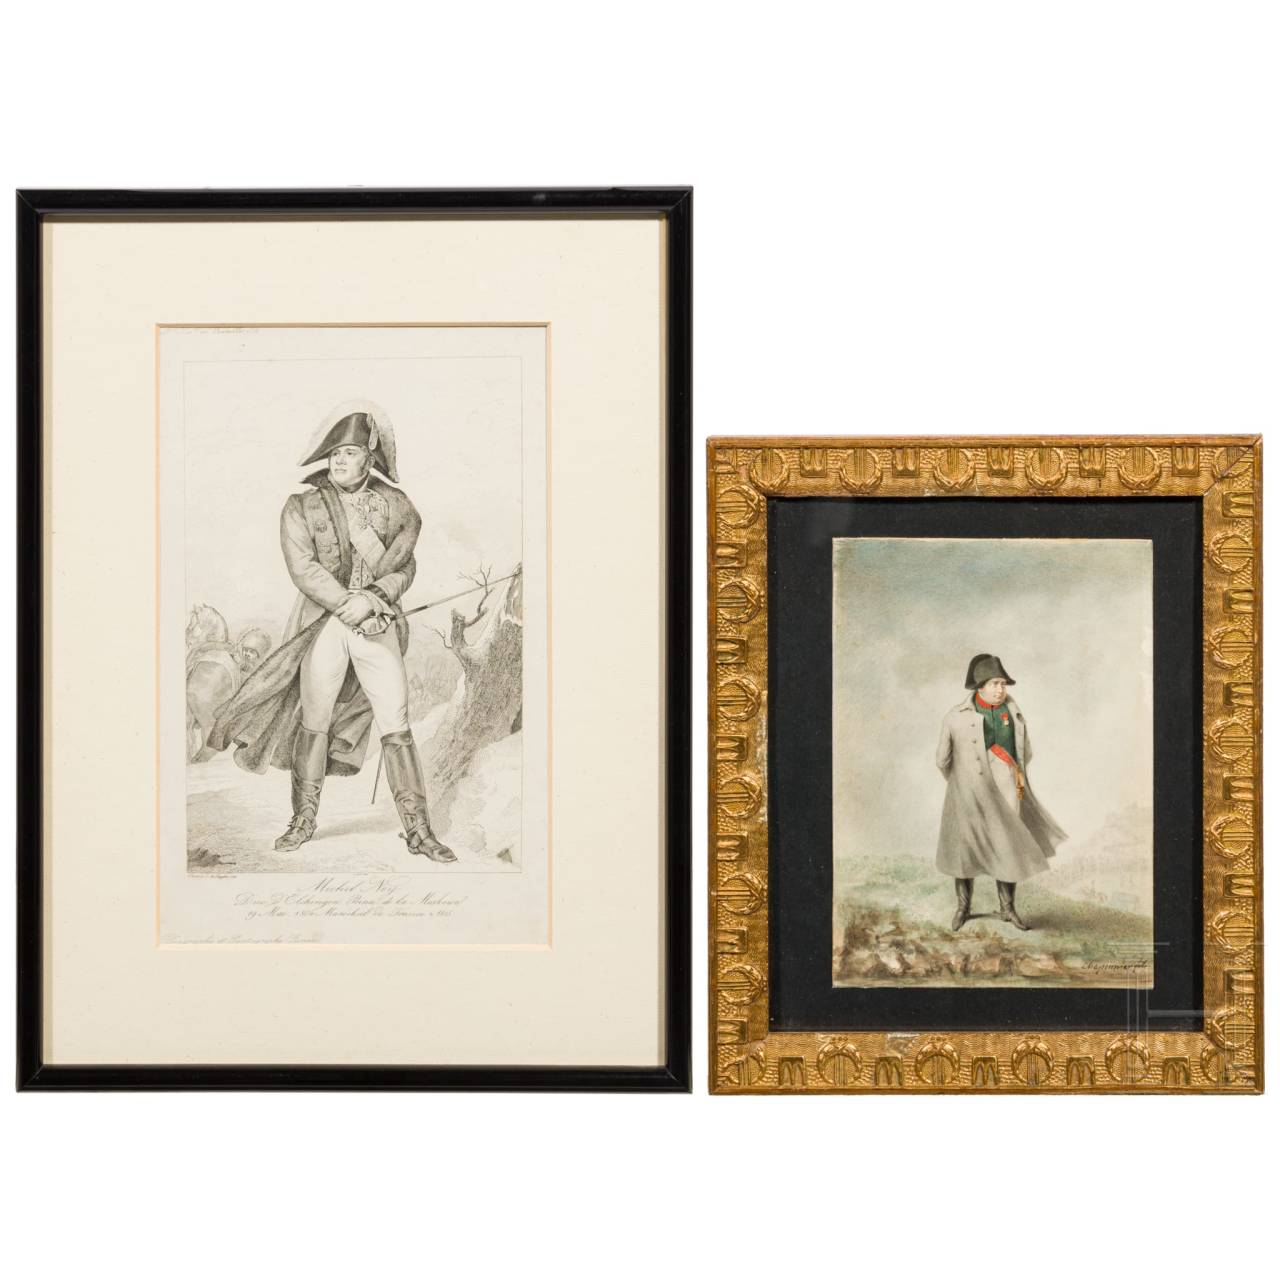 A contemporary watercolour of Napoleon and an engraving of Ney